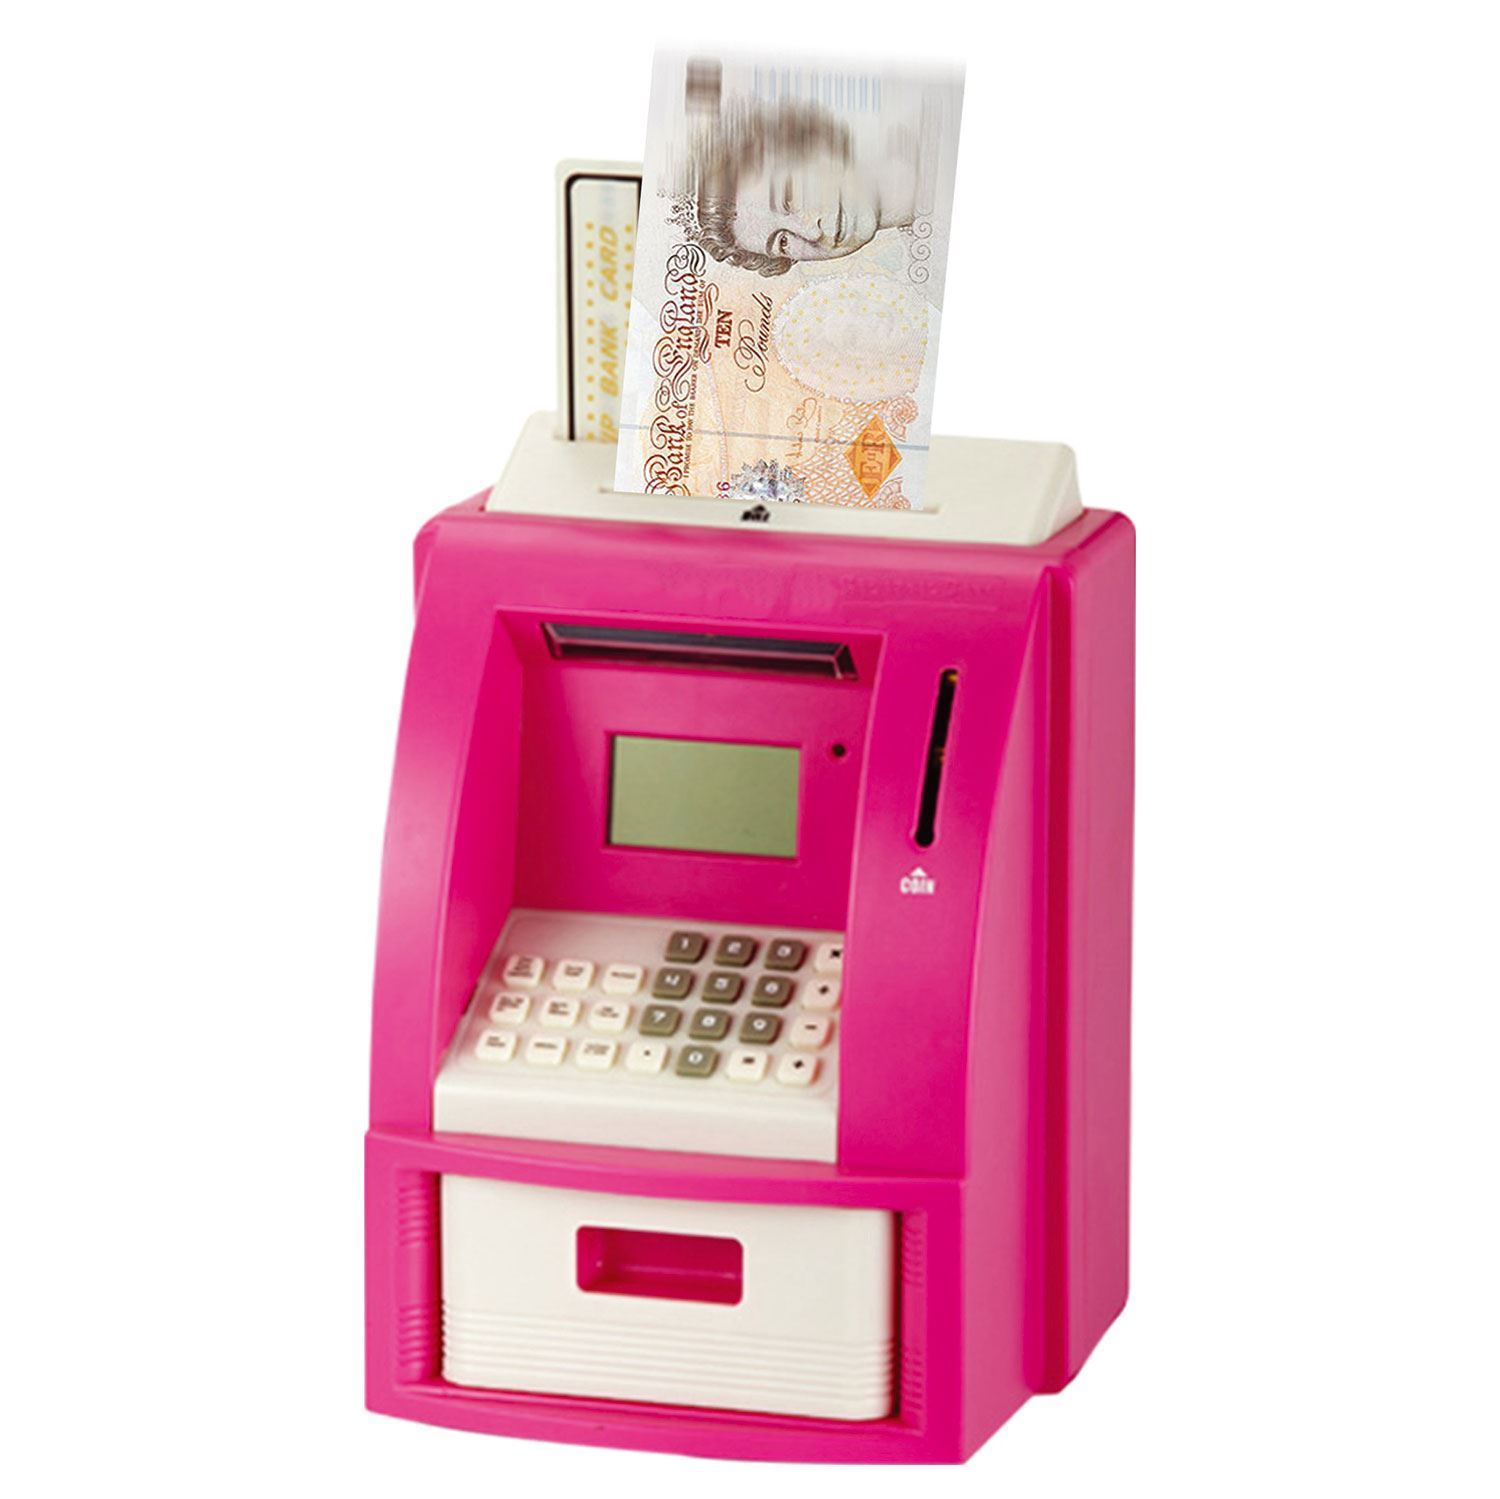 digital piggy bank atm machine card money note coin saving. Black Bedroom Furniture Sets. Home Design Ideas